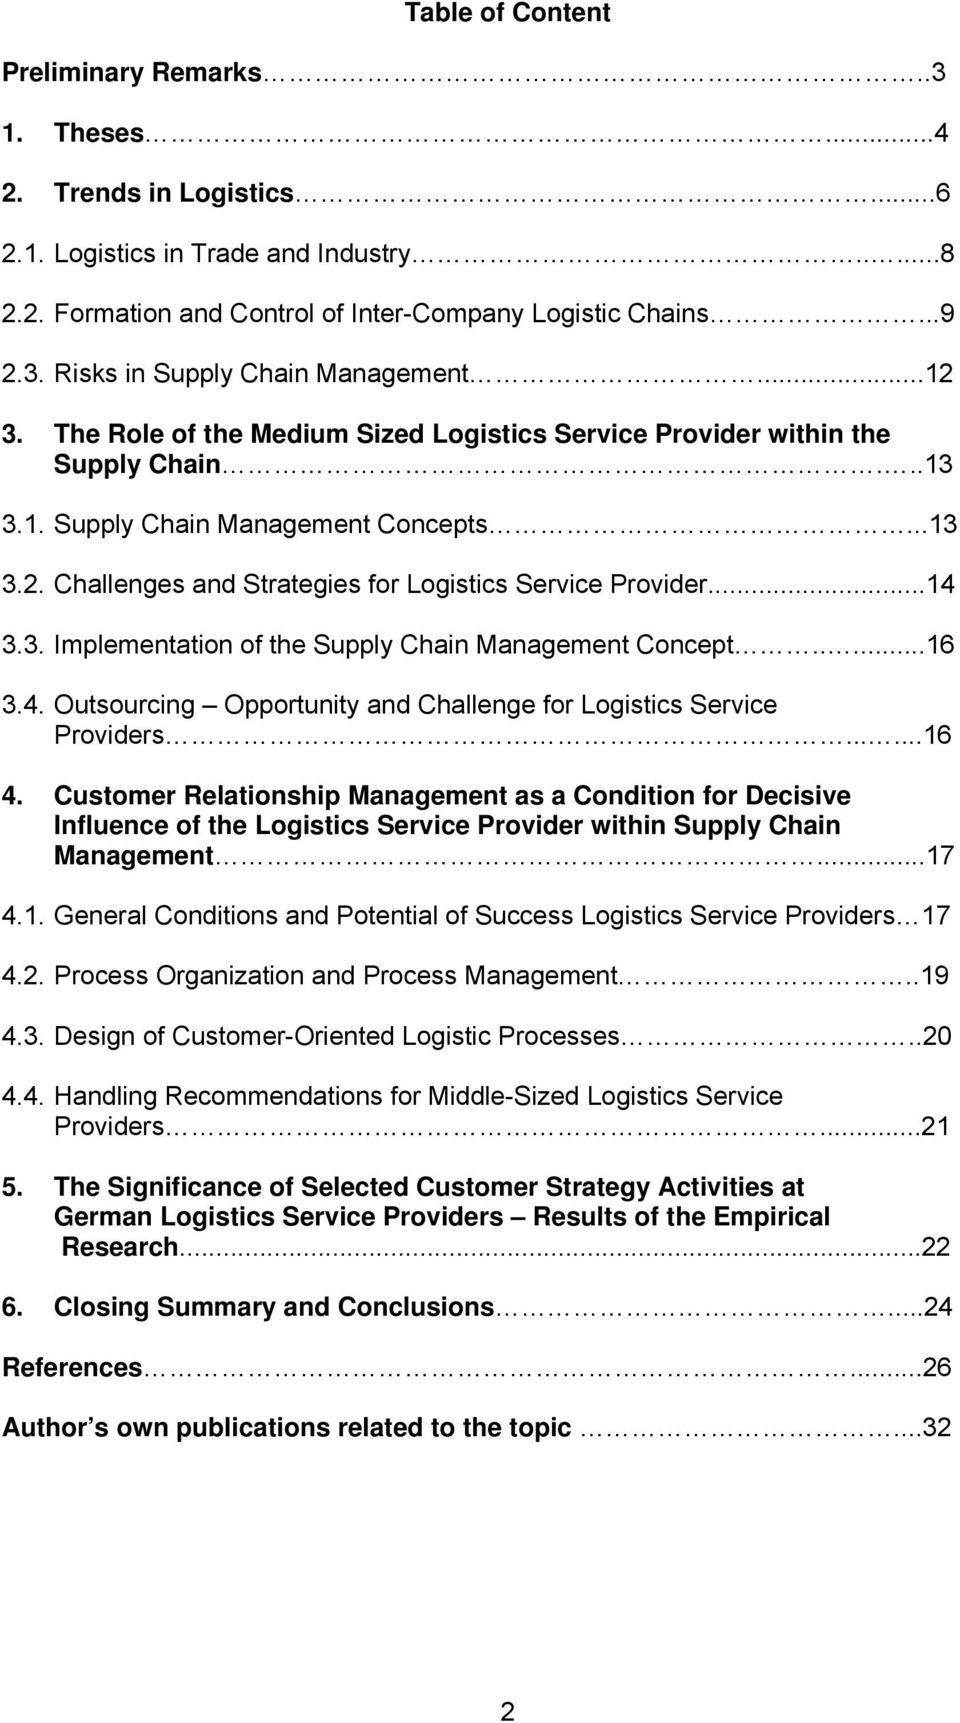 ..14 3.3. Implementation of the Supply Chain Management Concept.....16 3.4. Outsourcing Opportunity and Challenge for Logistics Service Providers......16 4.